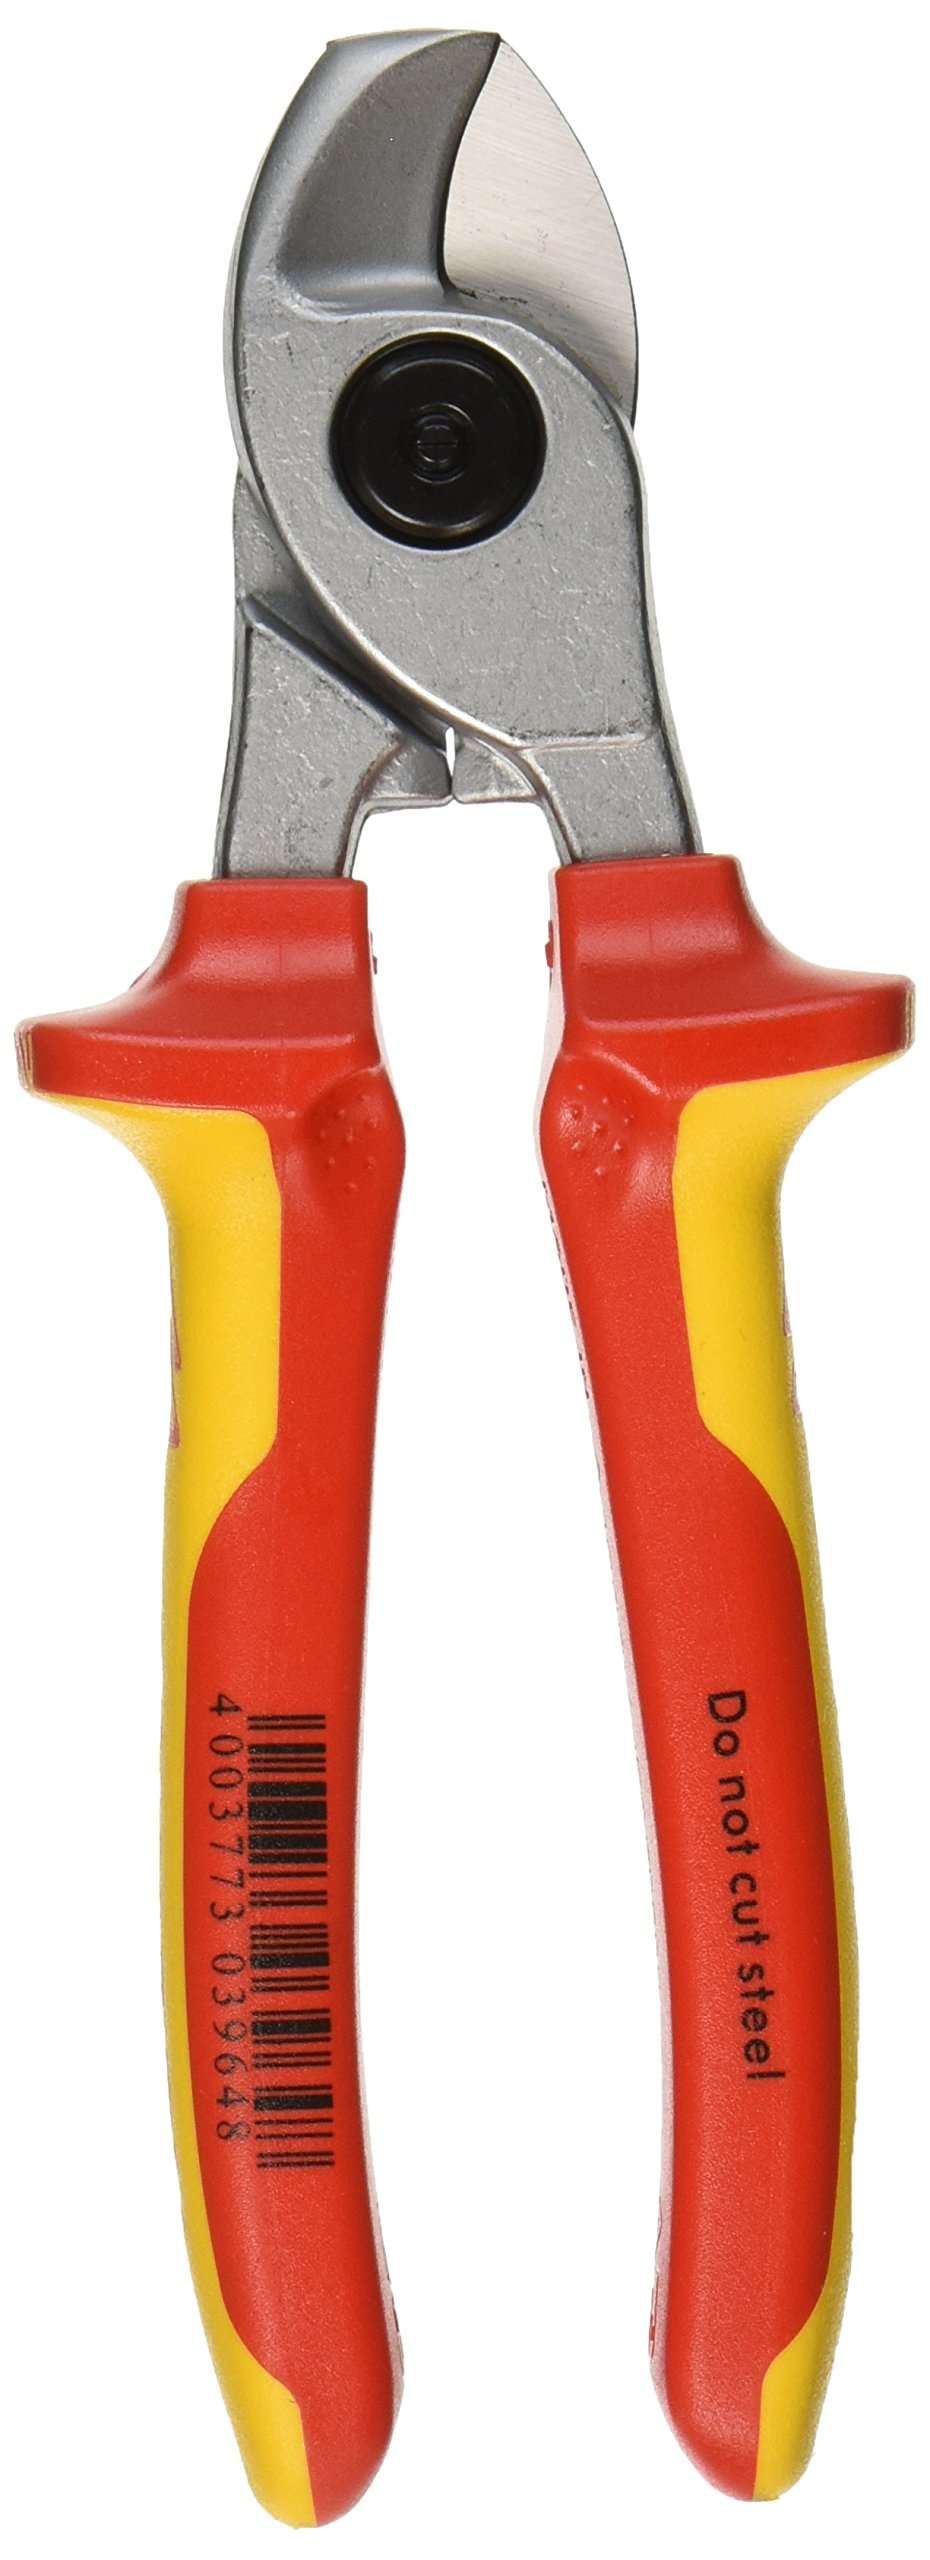 Knipex Tools 95 16 165 Cable Shears